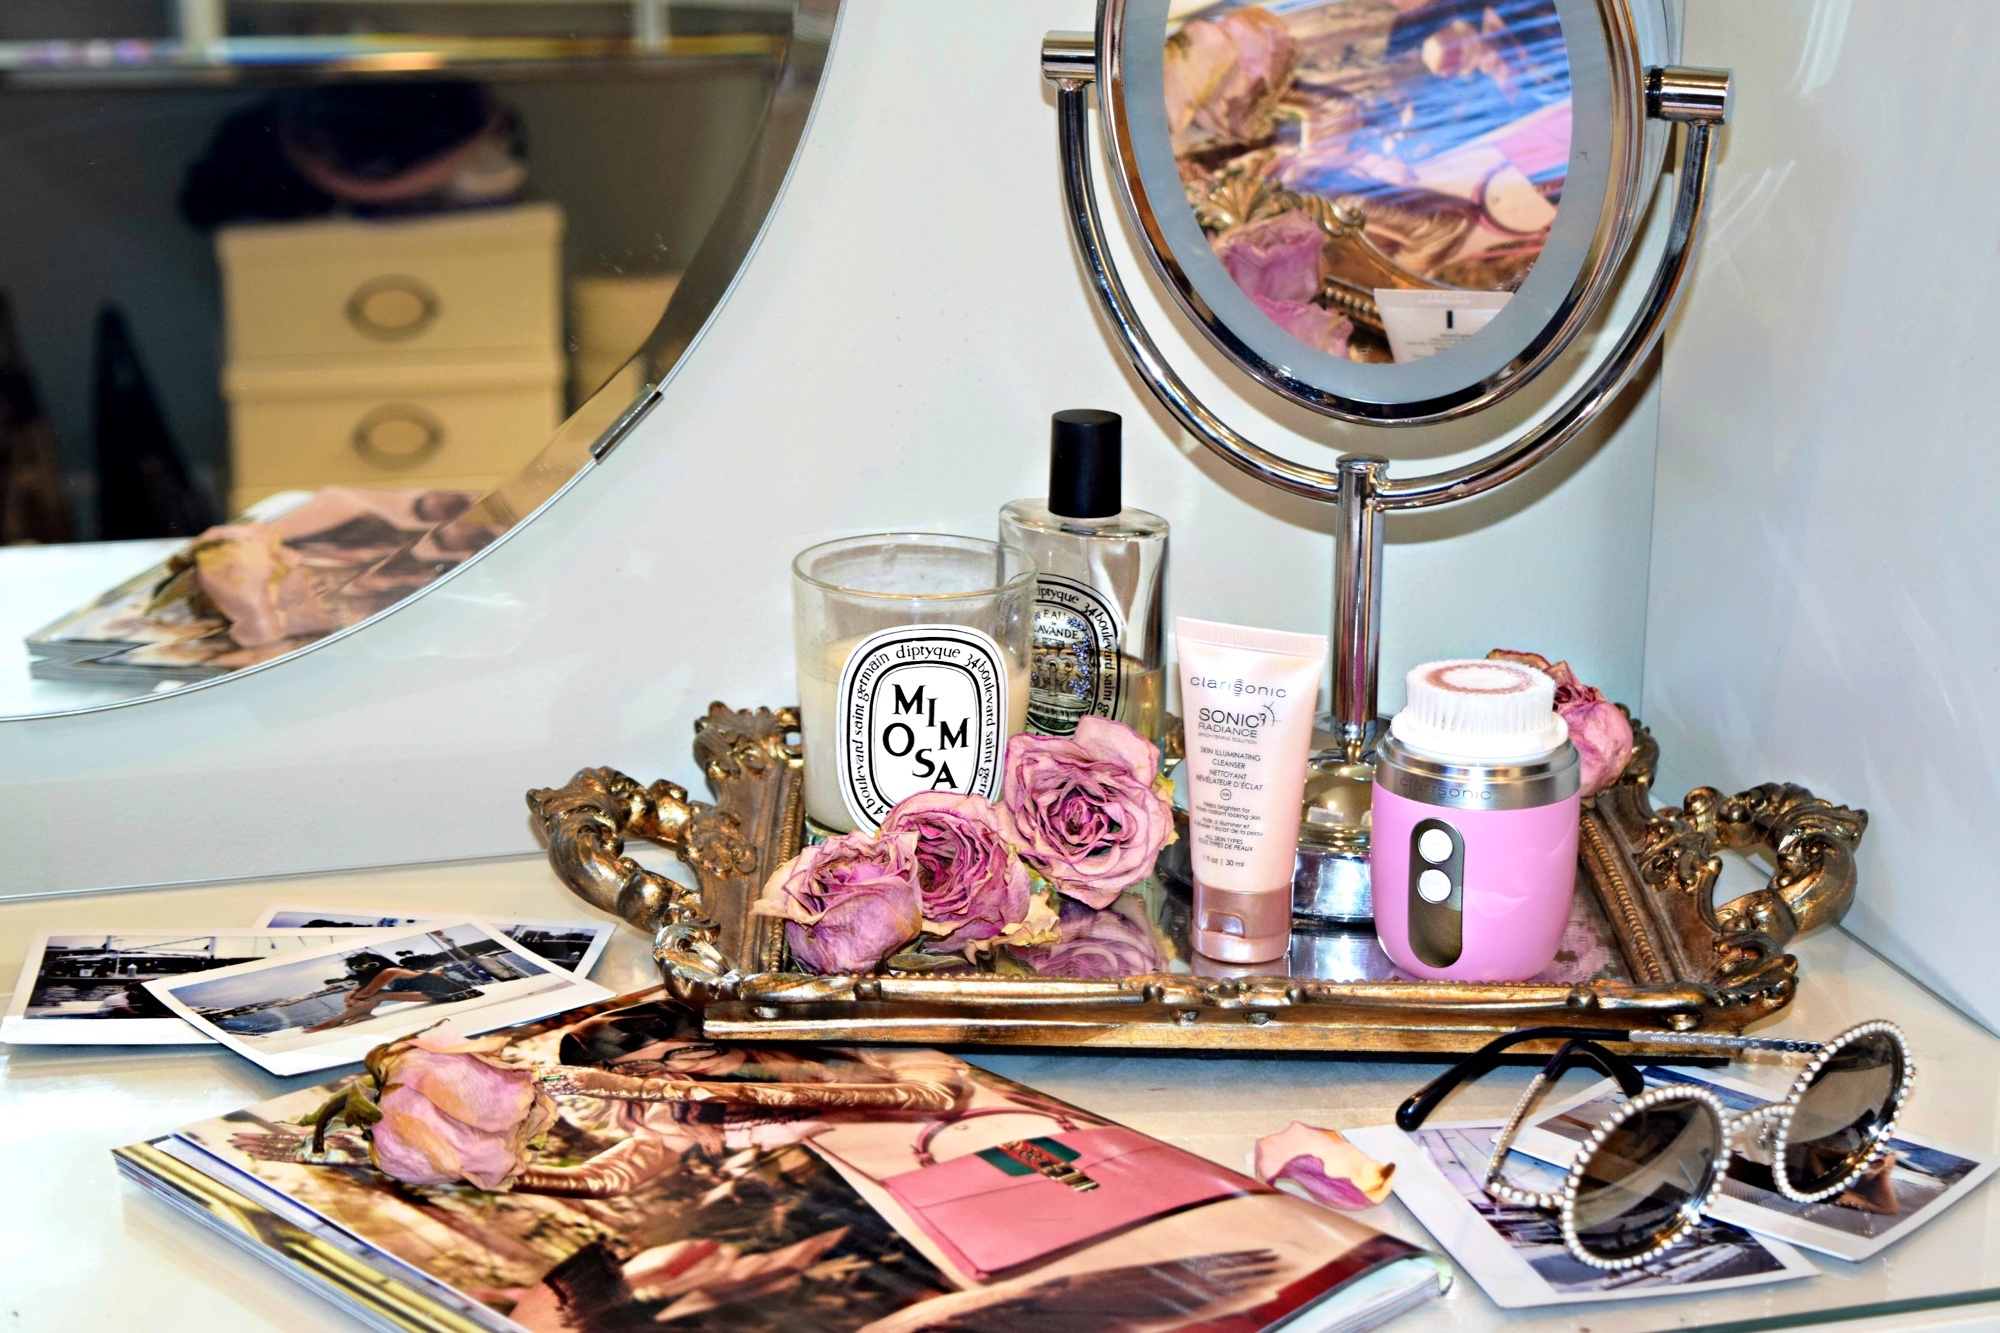 Clarisonic My Fit Mia: To Style, With Love